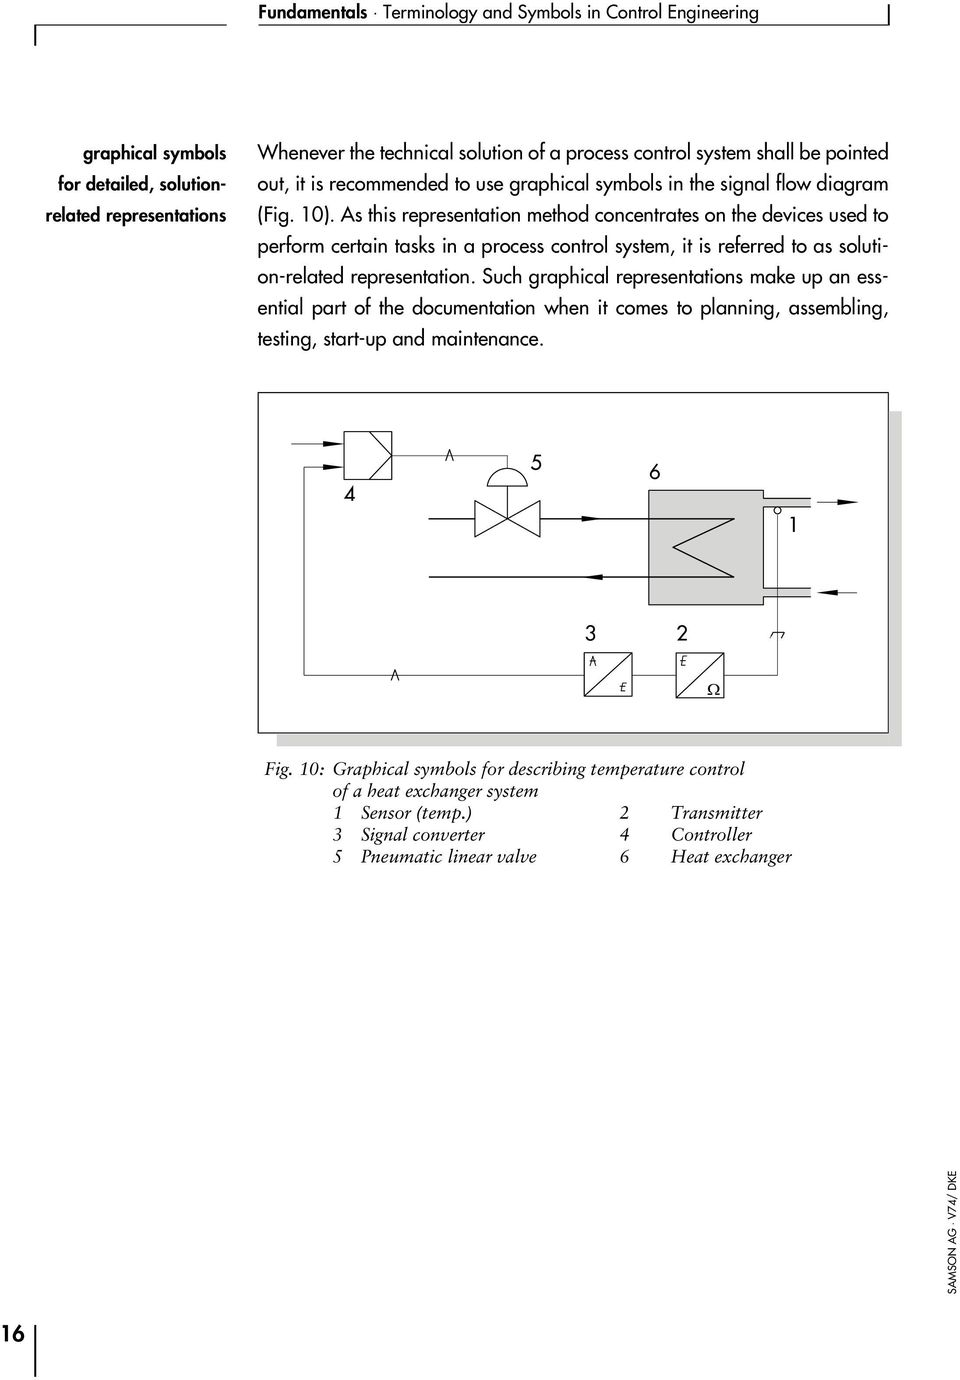 As this representation method concentrates on the devices used to perform certain tasks in a process control system, it is referred to as solution-related representation.